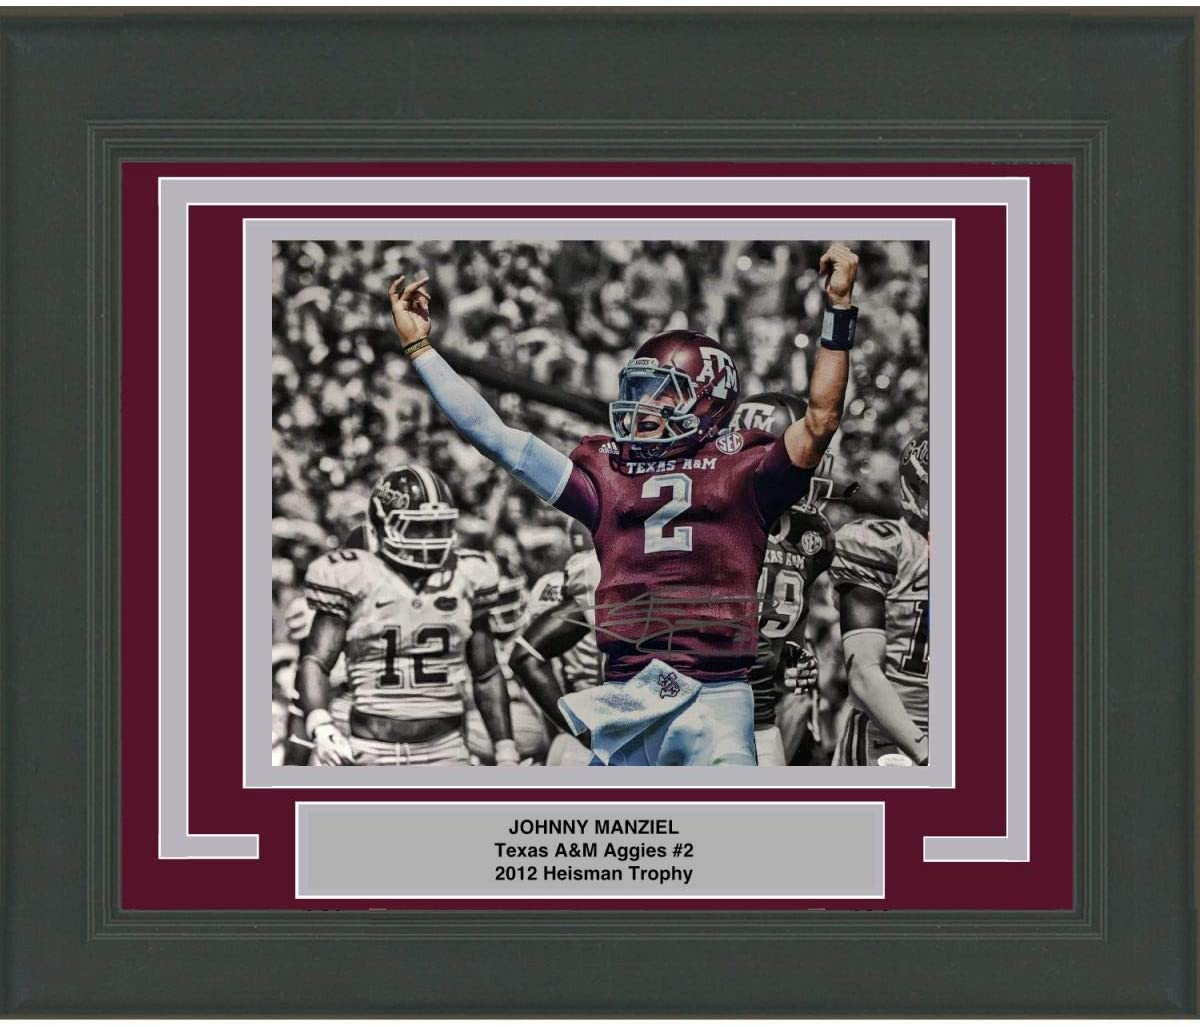 Framed Autographed/Signed Johnny Manziel Money Sign Texas A&M Aggies 16x20 College Football Photo JSA COA